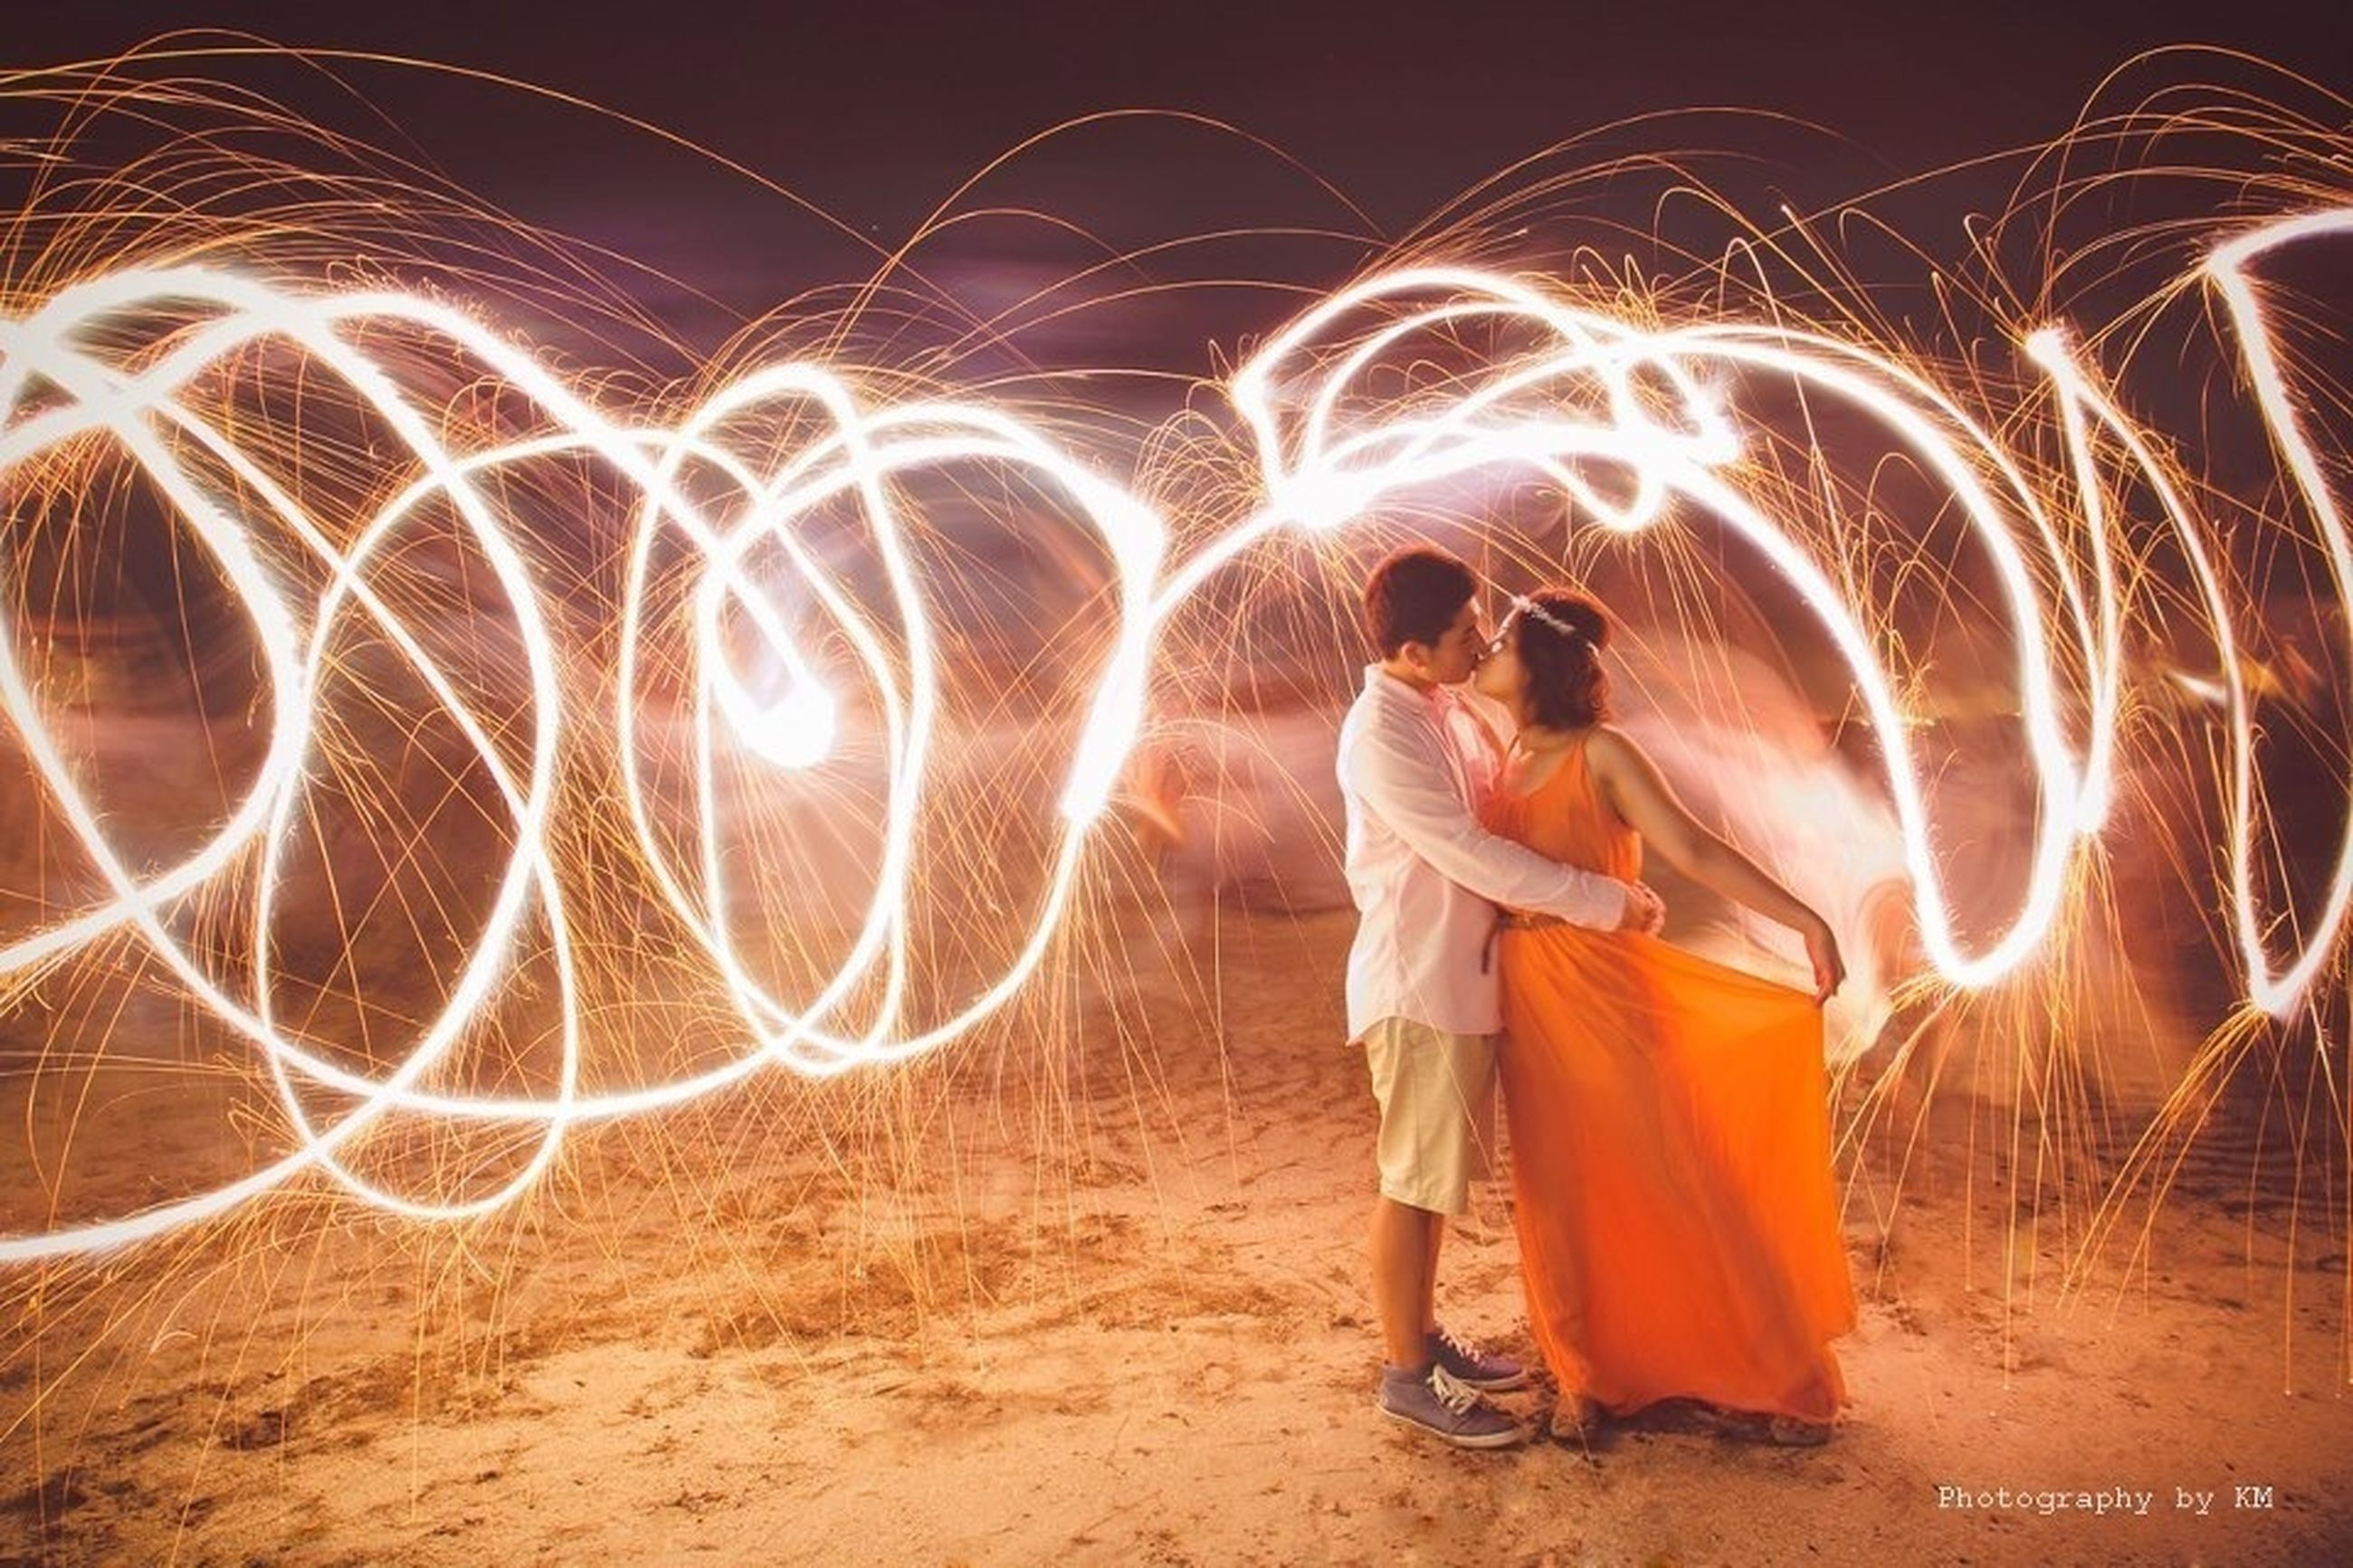 lifestyles, leisure activity, illuminated, night, rear view, full length, casual clothing, standing, person, childhood, motion, girls, men, enjoyment, elementary age, long exposure, outdoors